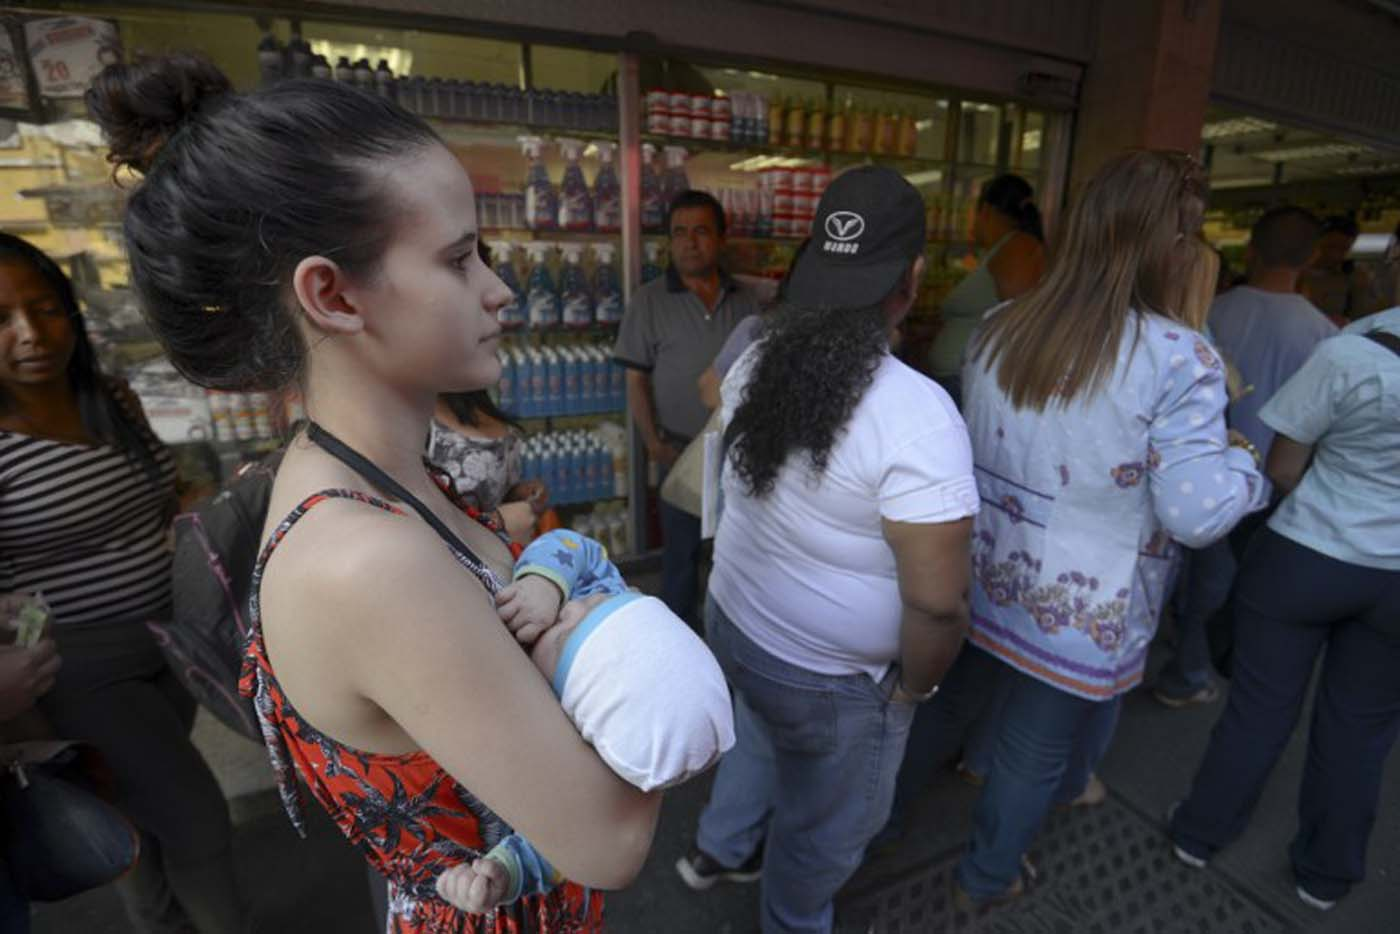 People queu in front a supermarket in Caracas, Venezuela on January 28, 2016. The economic debacle of Venezuela deepens as oil prices are bottoming out.  AFP   PHOTO/JUAN BARRETO / AFP / JUAN BARRETO